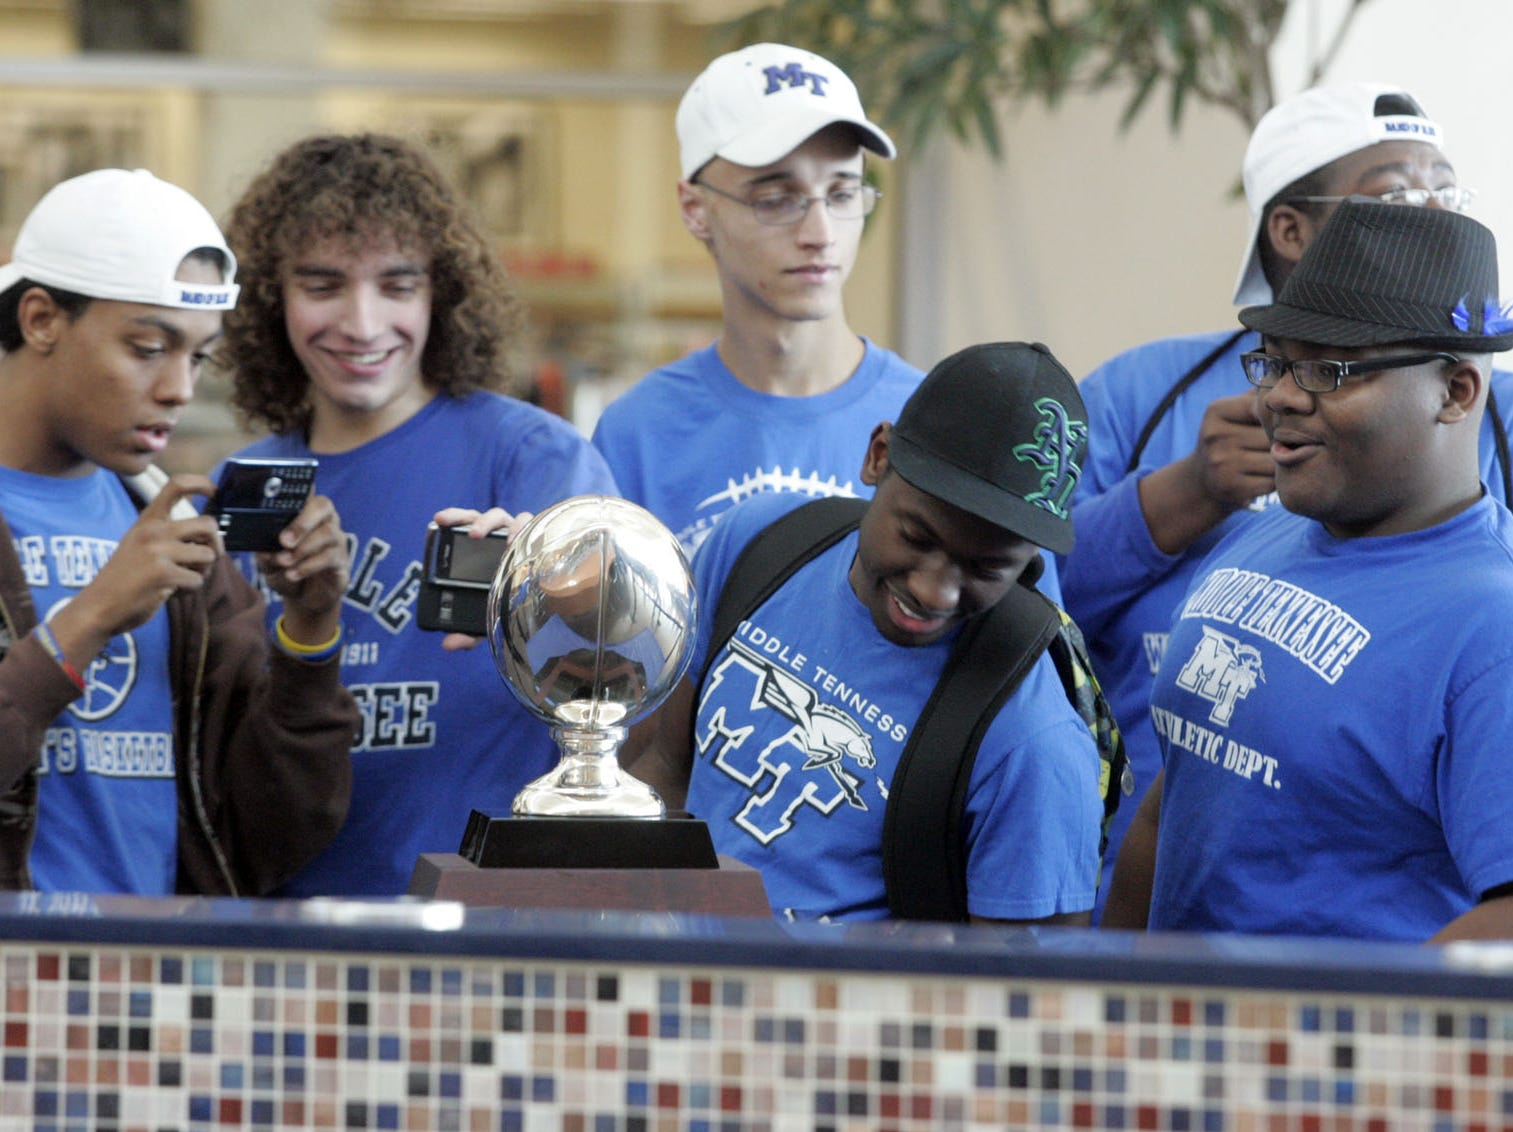 Members of the Band of Blue check out the New Orleans Bowl trophy during the championship celebration at Stones River Mall.